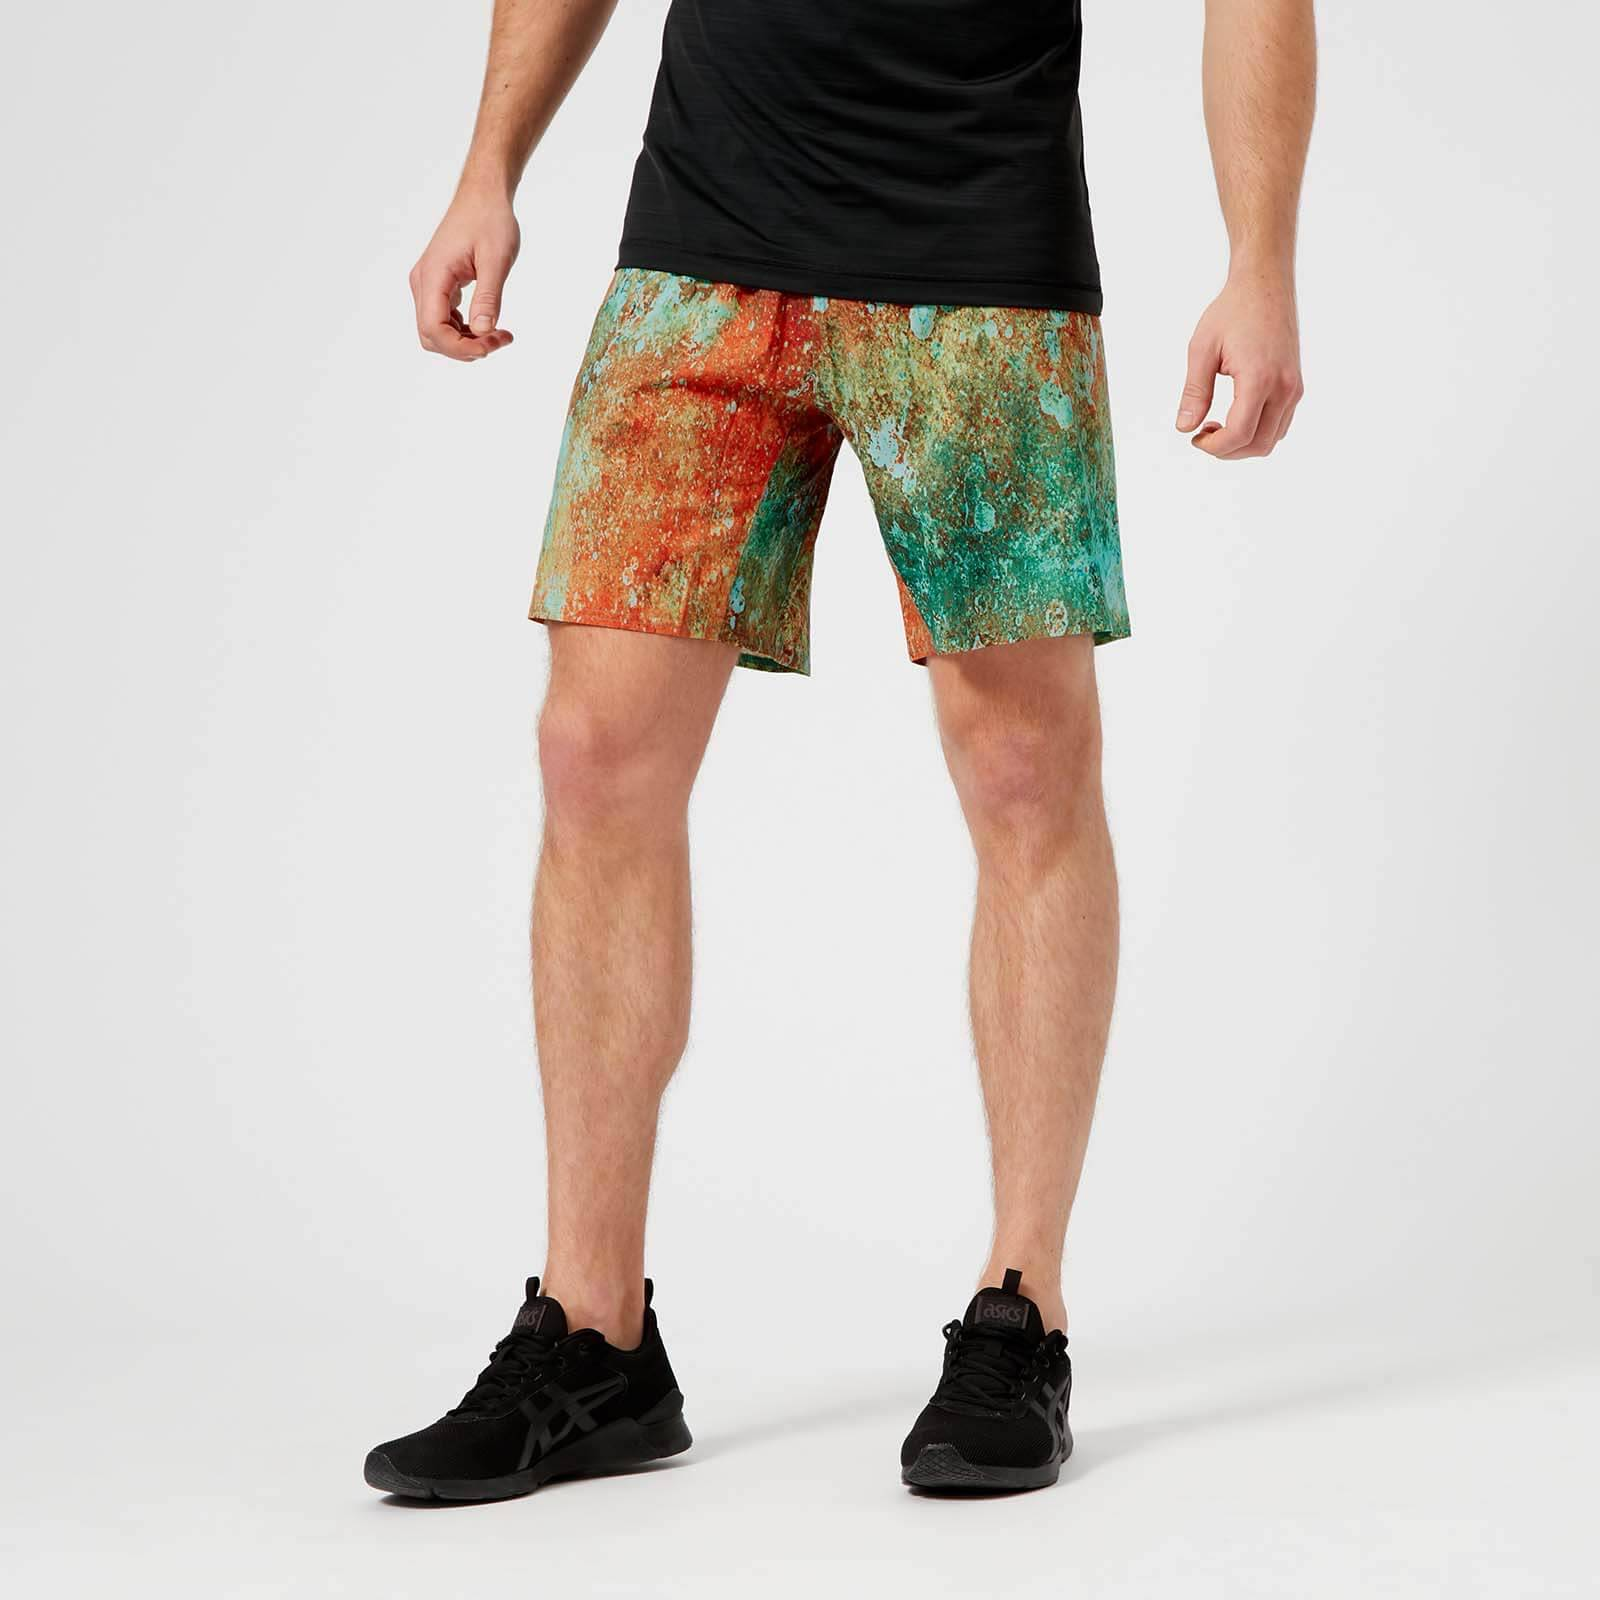 Reebok Men's CrossFit Speed Shorts - Turquoise - XL - Multi